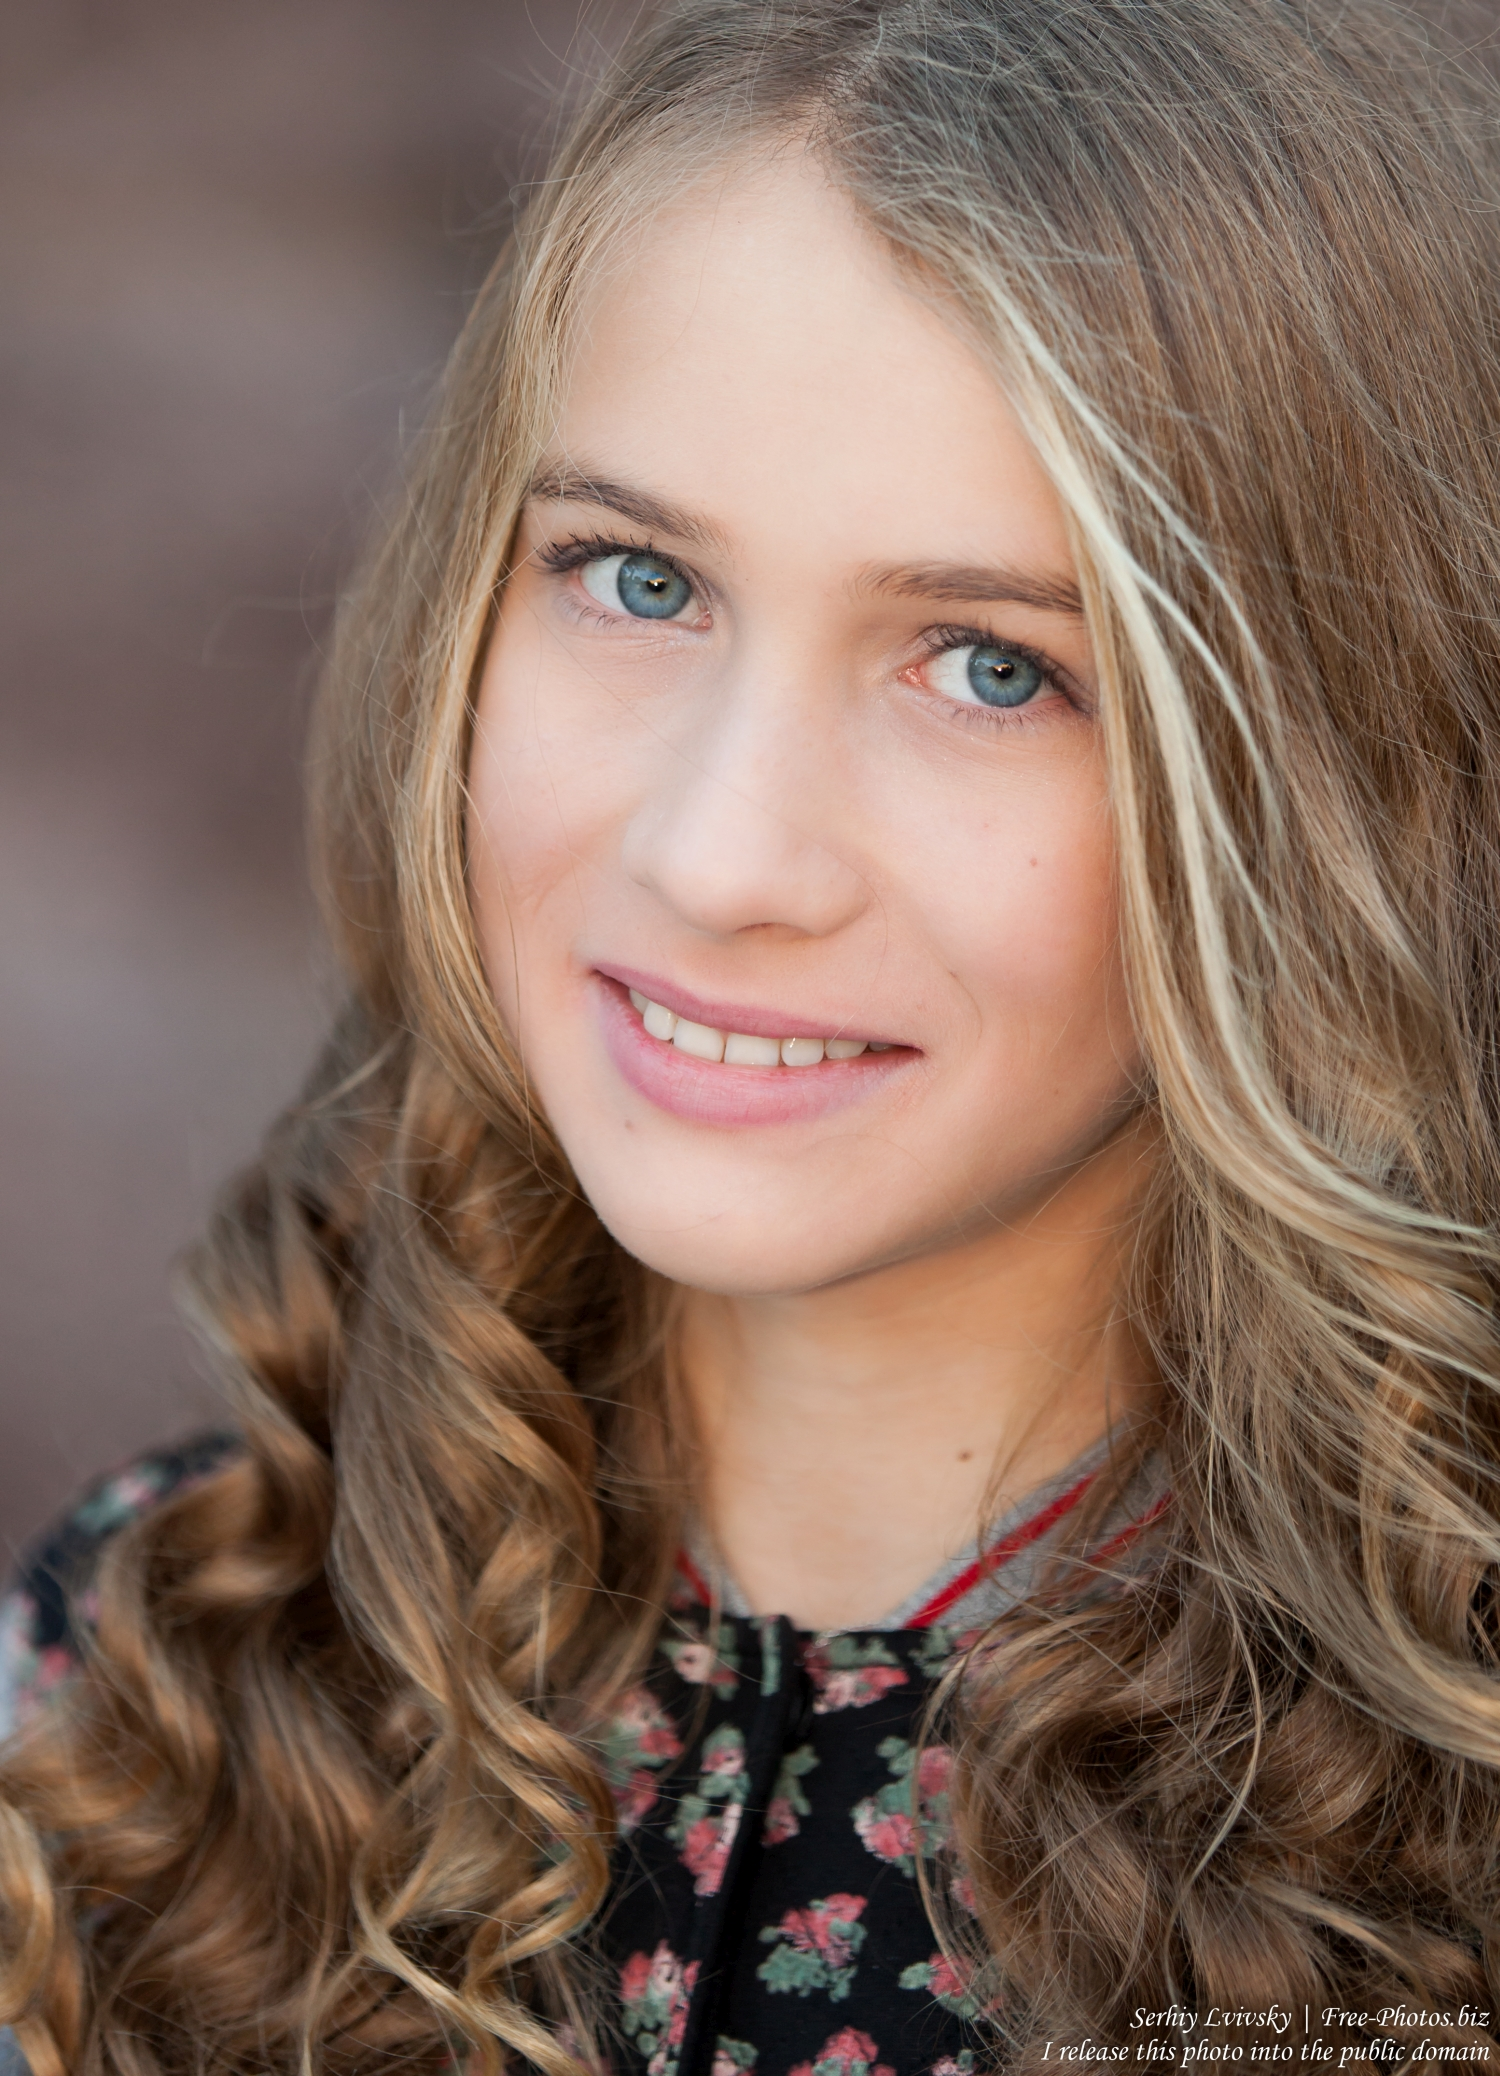 a_13-year-old_girl_photographed_by_serhiy_lvivsky_in_october_2015_12